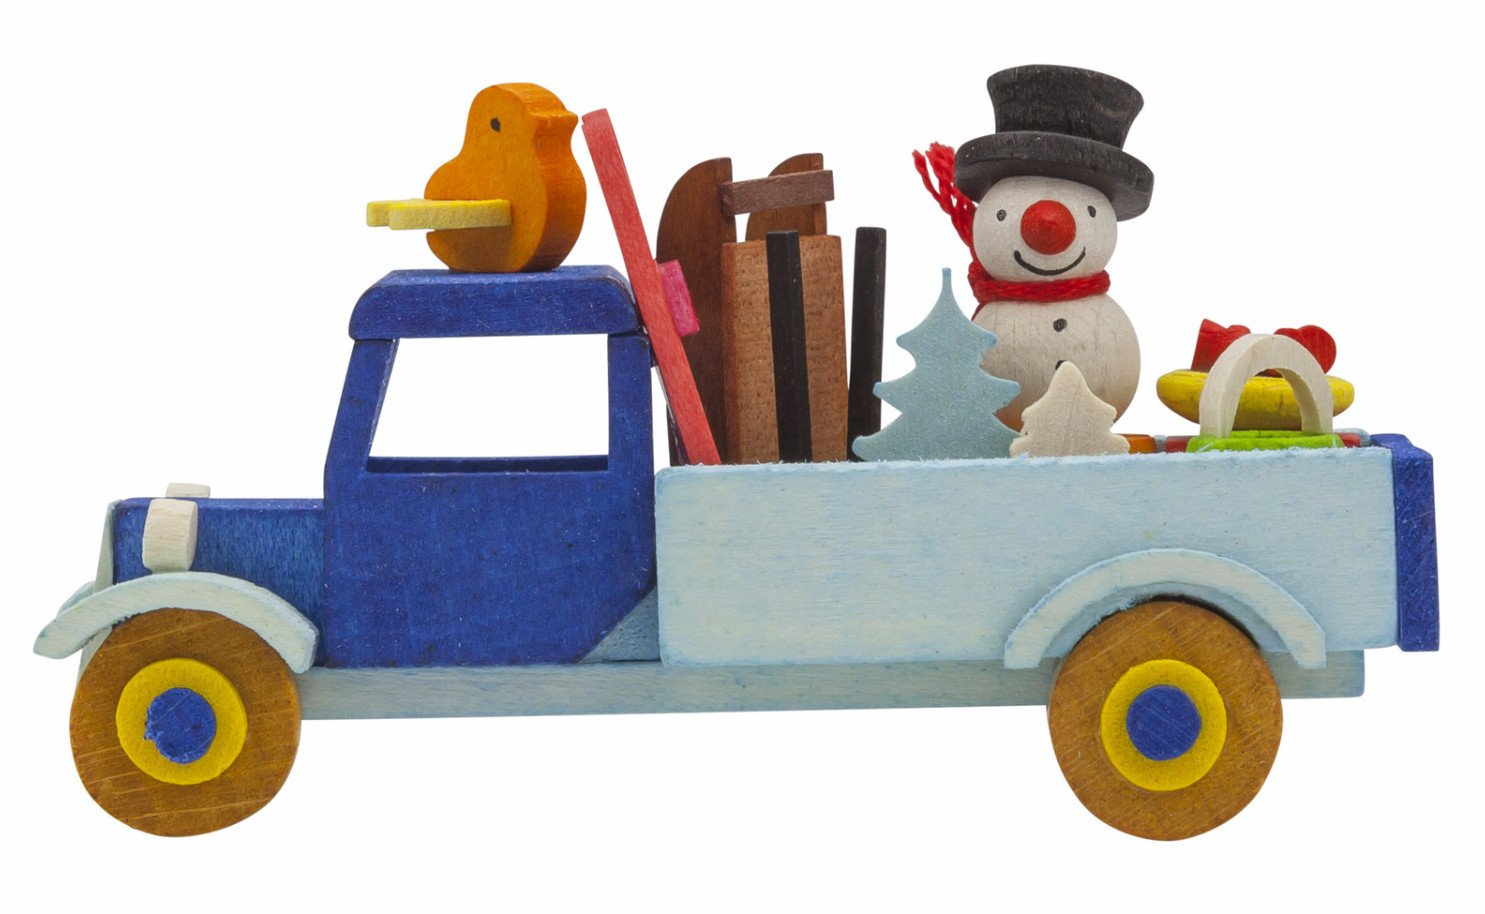 Adorable Christmas truck - Skiing Snowman